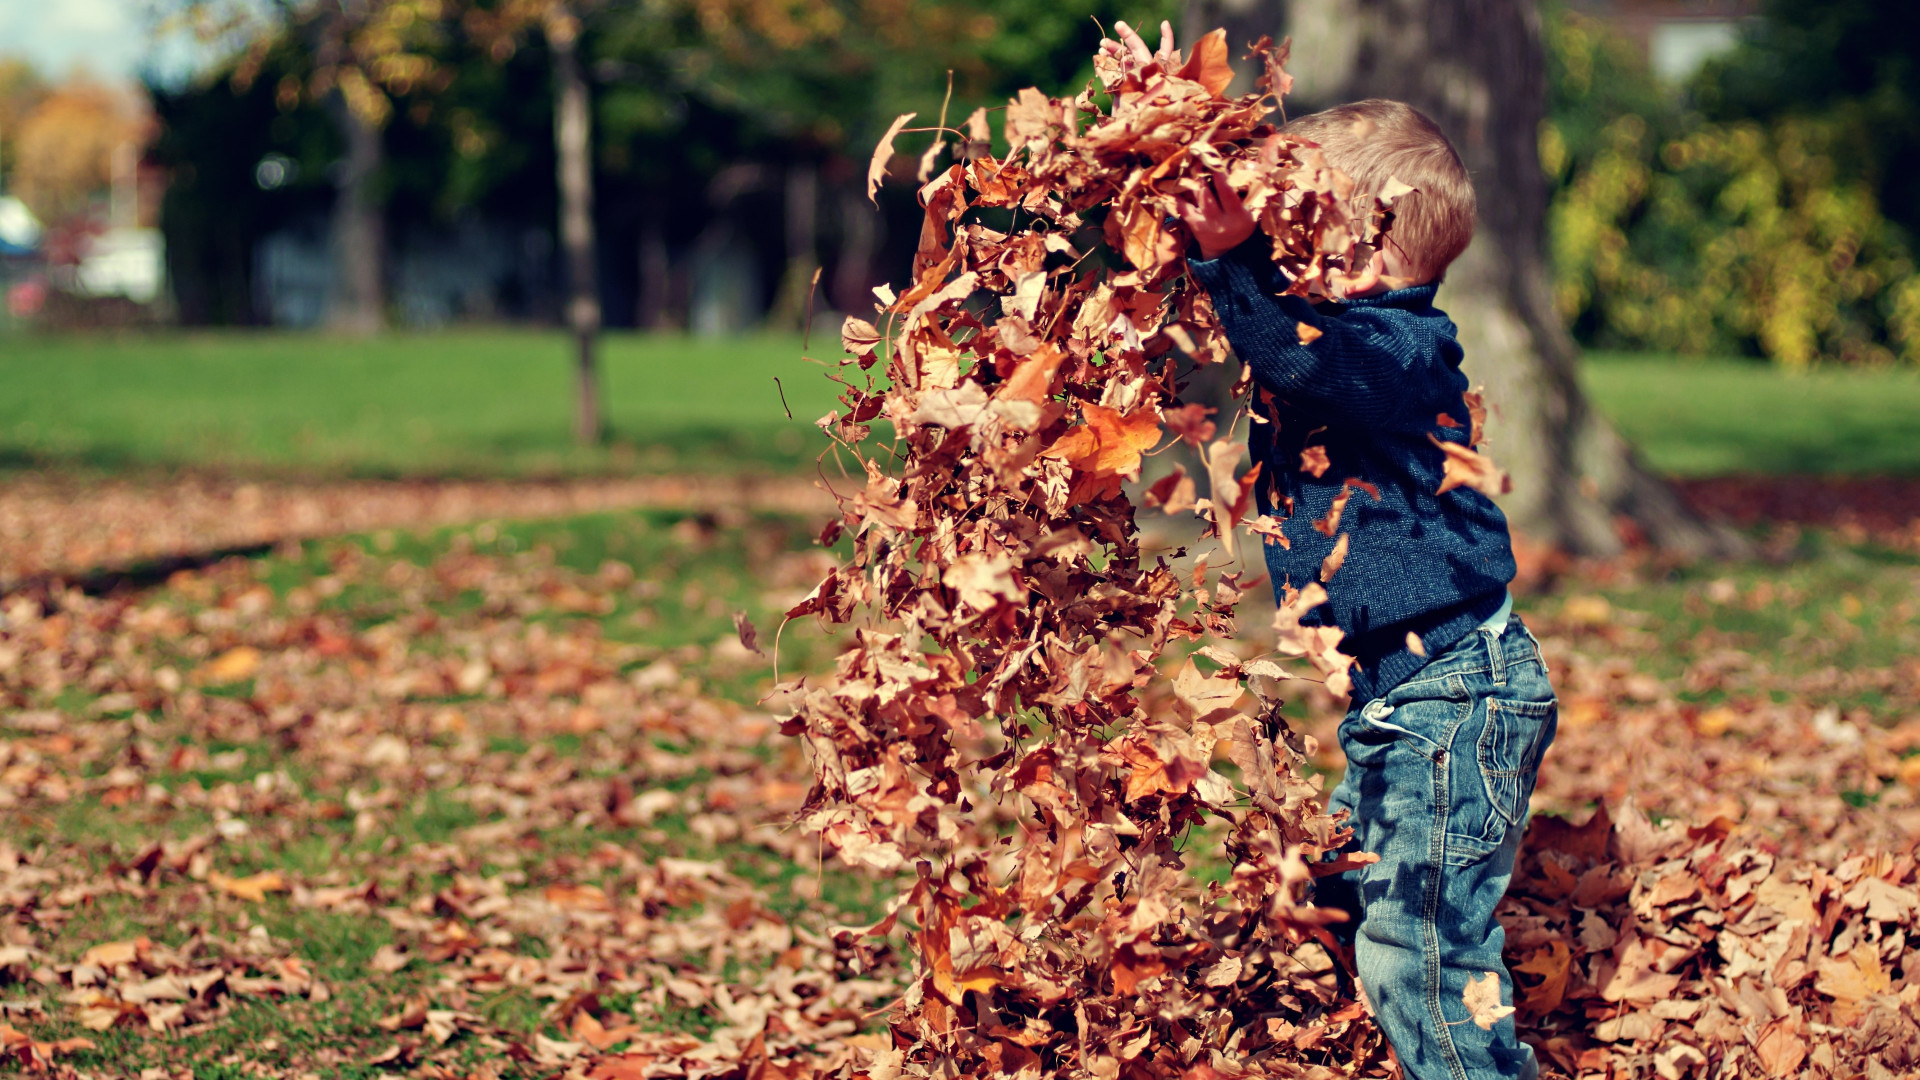 The child is playing with leaves wallpaper 1920x1080